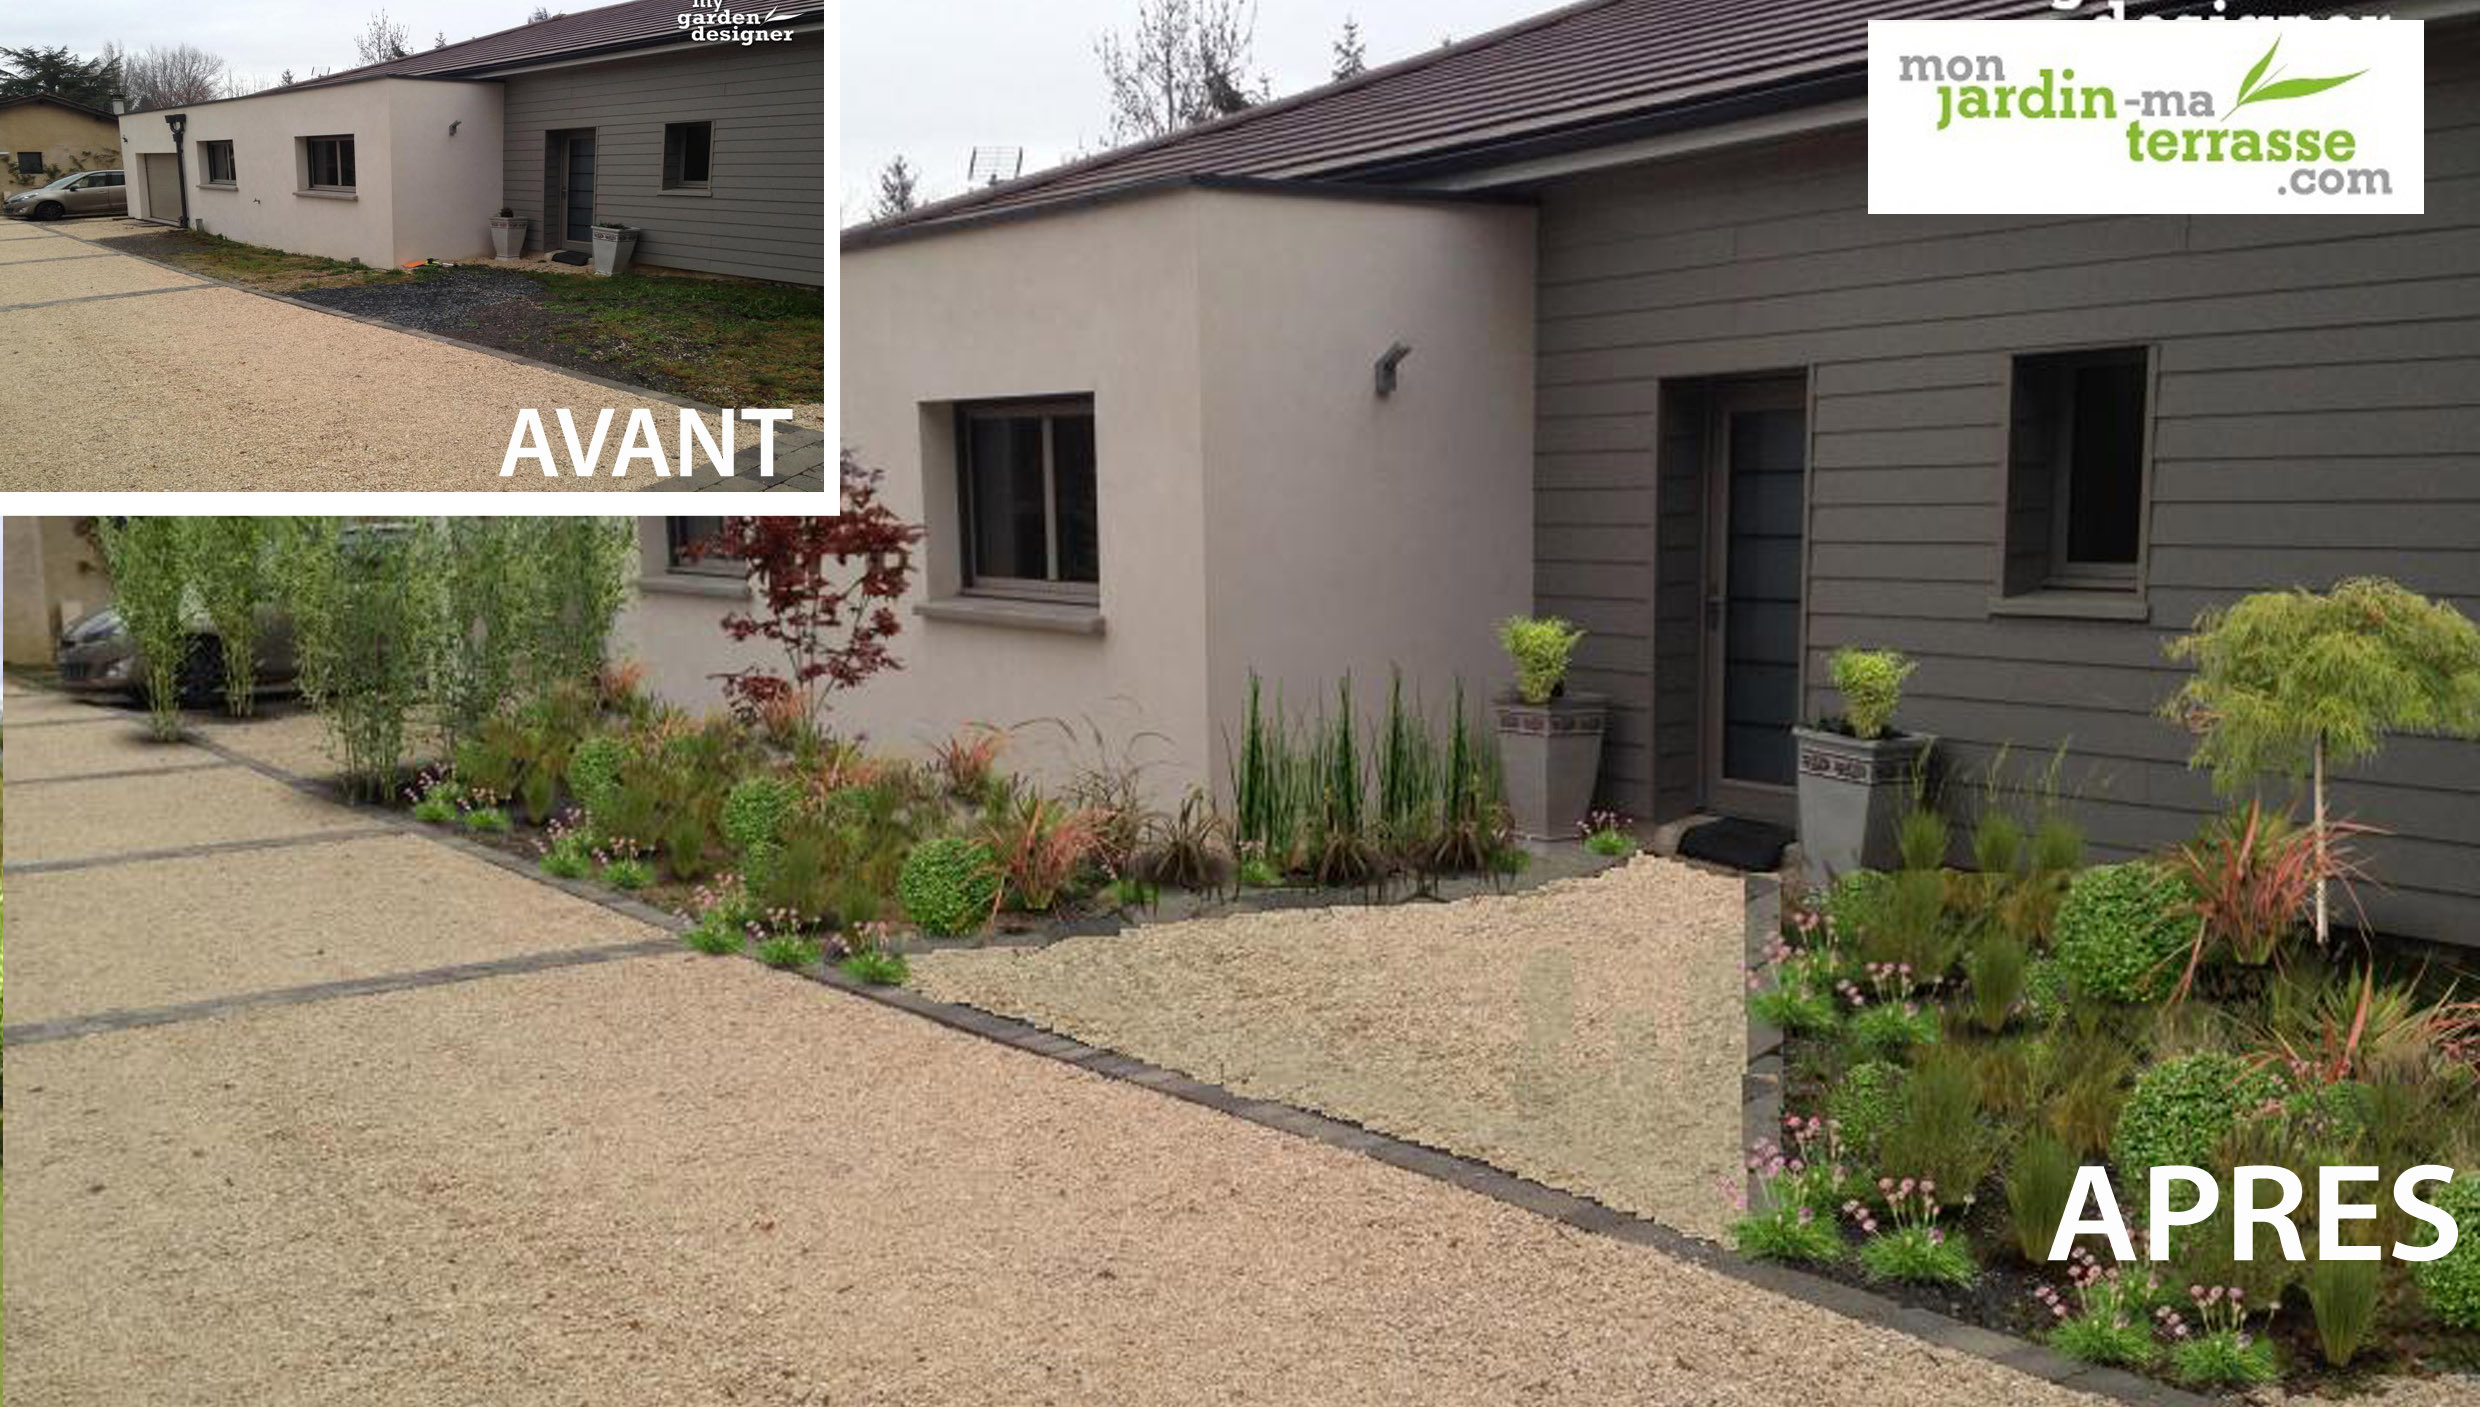 Am nagement du jardin de l entr e d une maison for Amenagement entree exterieur